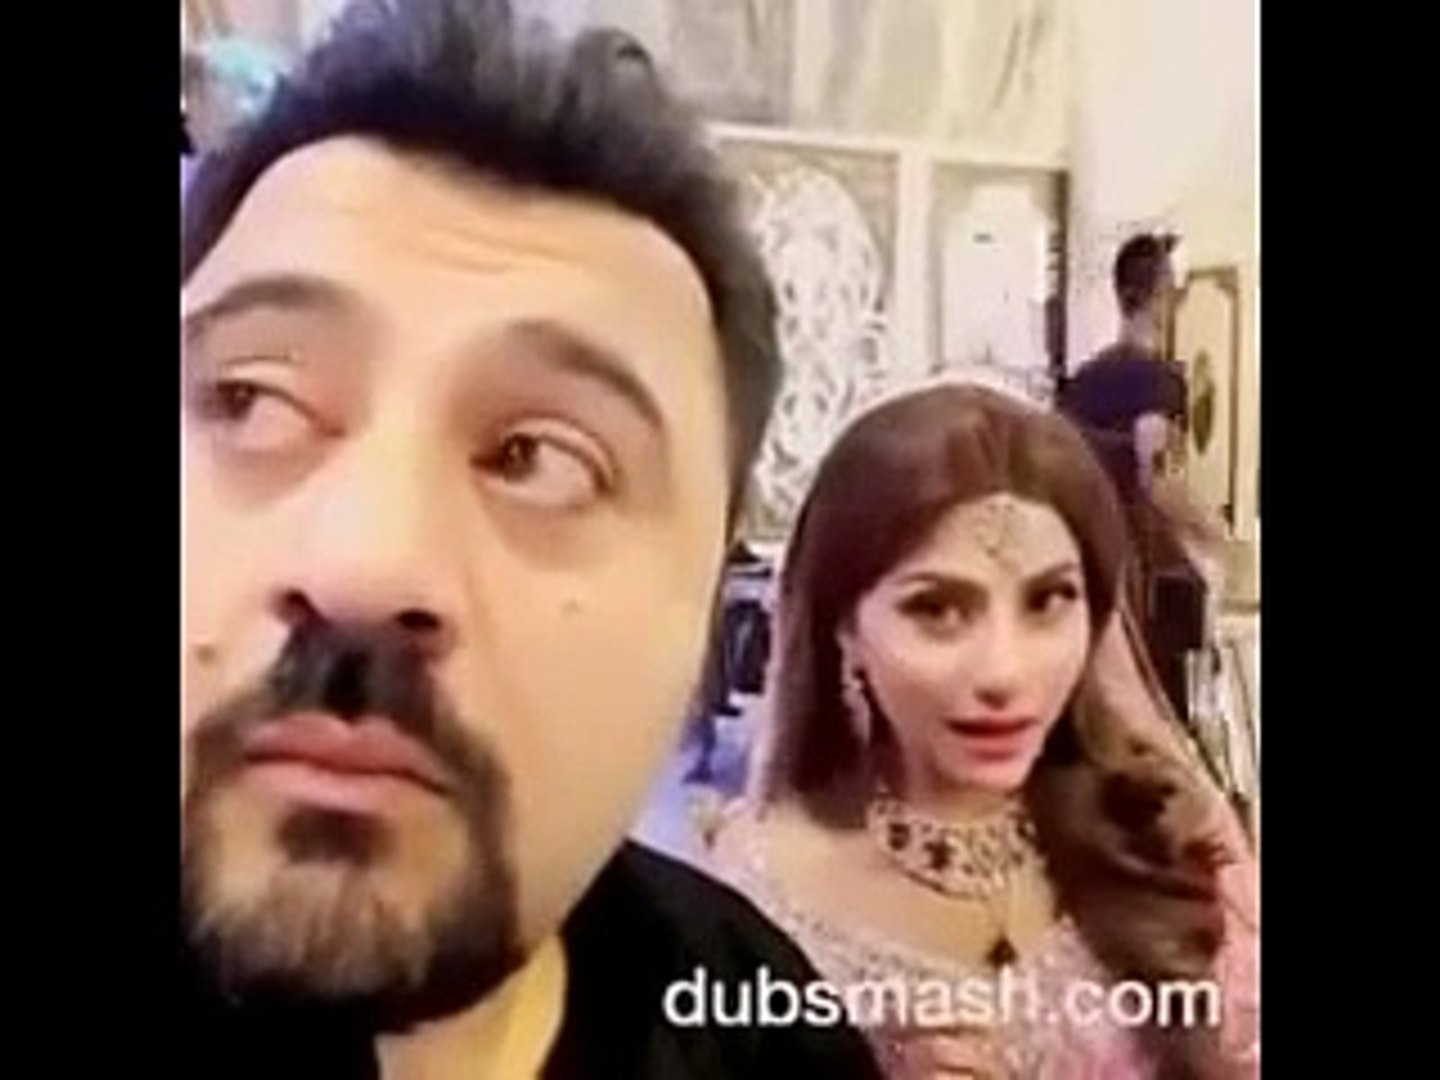 Dubsmash Video of Pakistani Actors and Actresses 2015